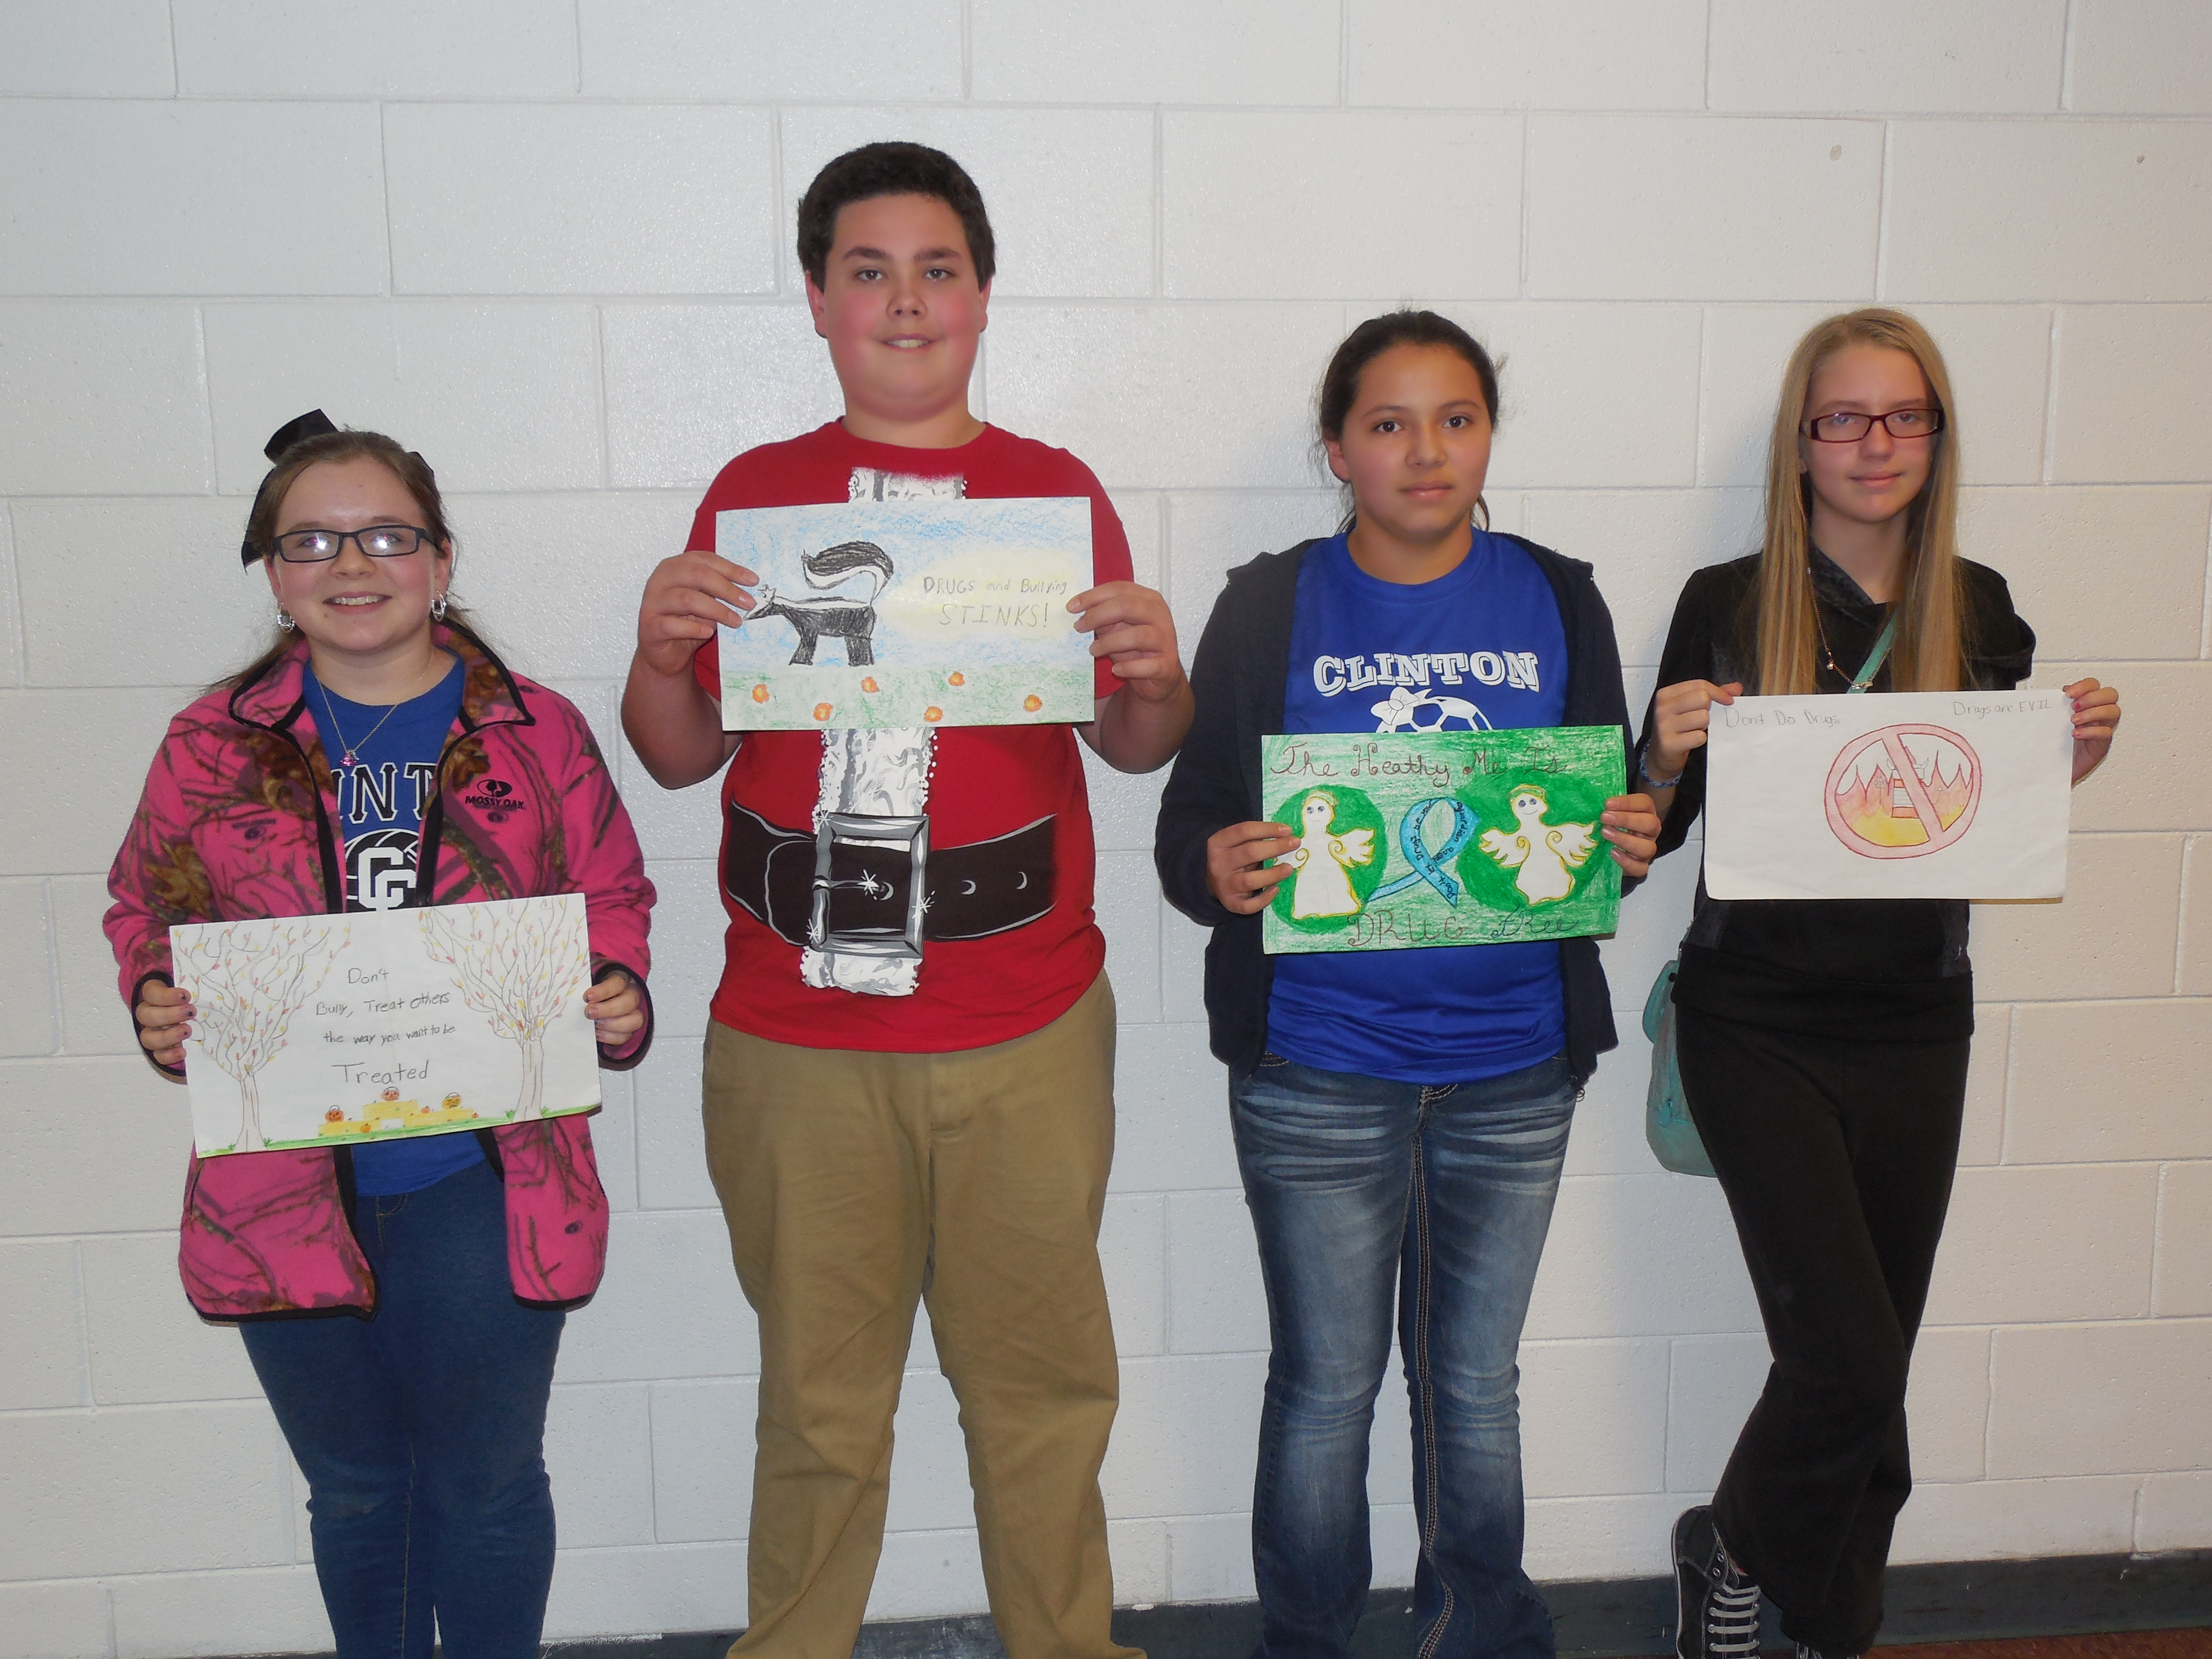 6th grade poster contest winners:  Megan Neal (1st place), Alex Duvall (2nd place), Stacy Pascual (tie—3rd place), and Jillian Perdue (tie—3rd place).